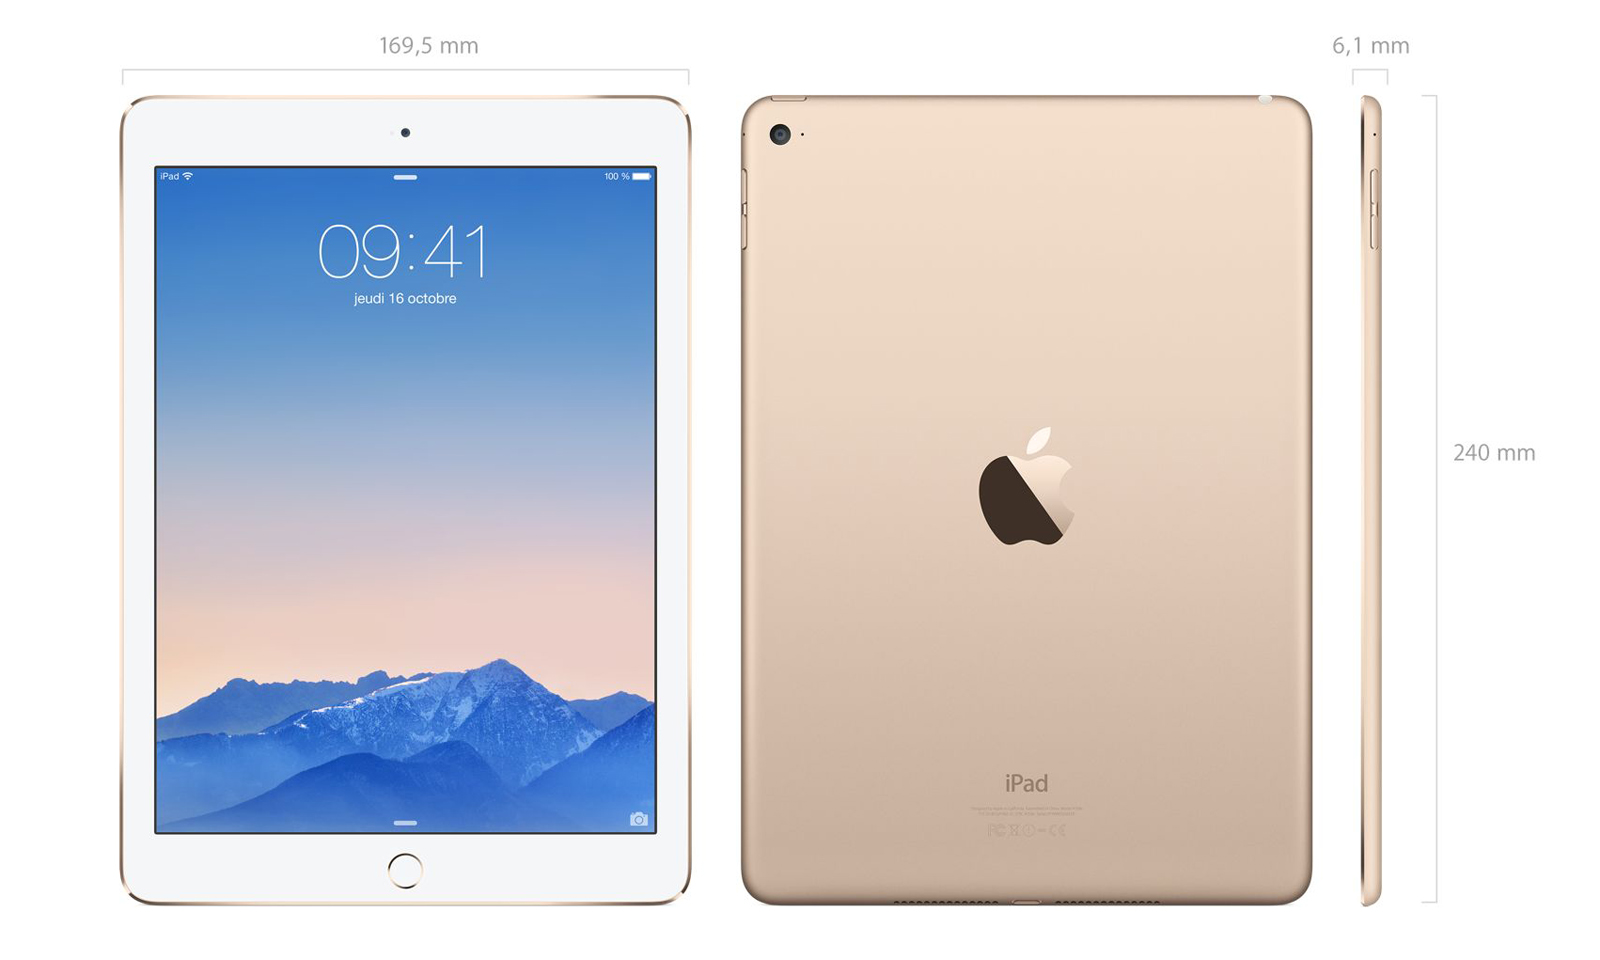 tablette apple ipad air 2 64 go or non d 39 occasion. Black Bedroom Furniture Sets. Home Design Ideas